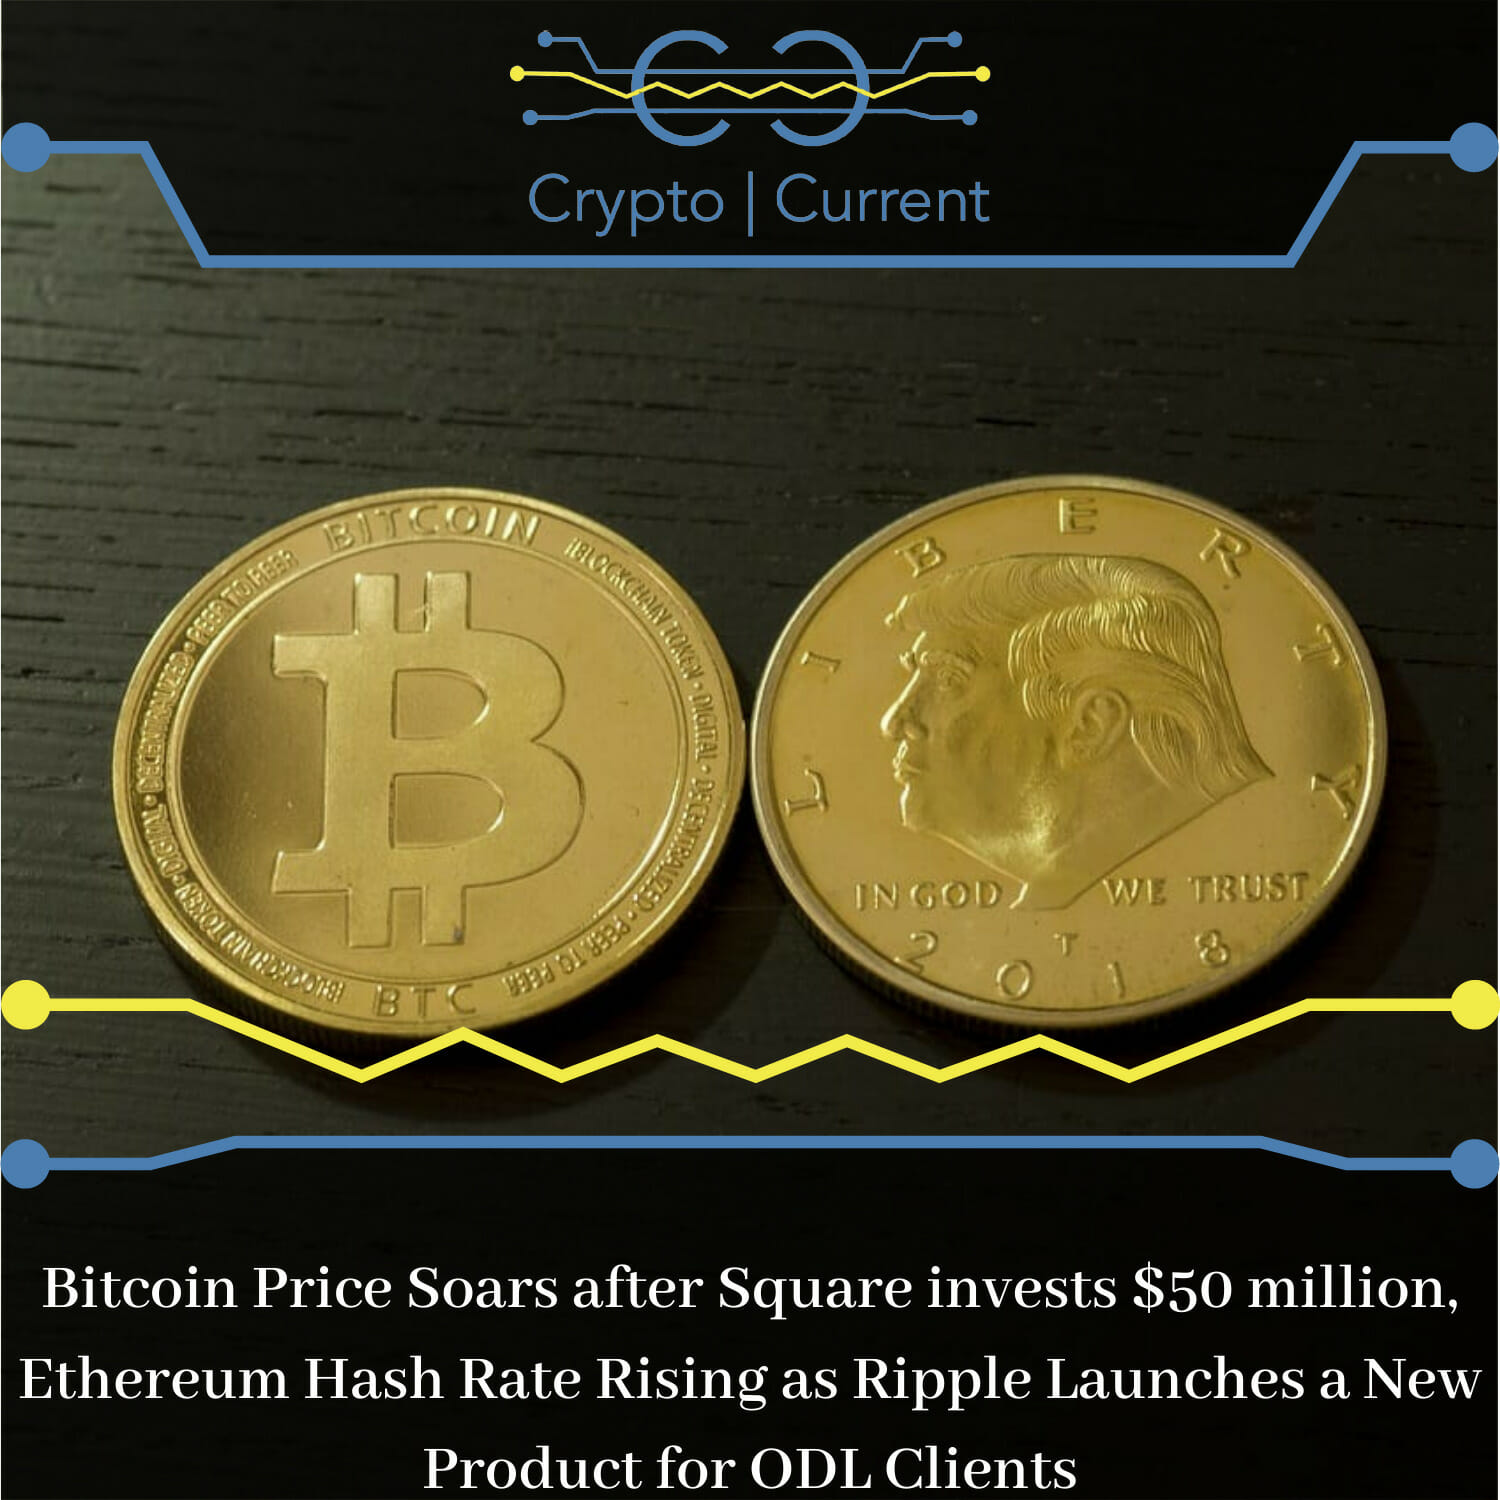 Bitcoin Price Soars after Square invests $50 million, Ethereum Hash Rate Rising as Ripple Launches a New Product for ODL Clients